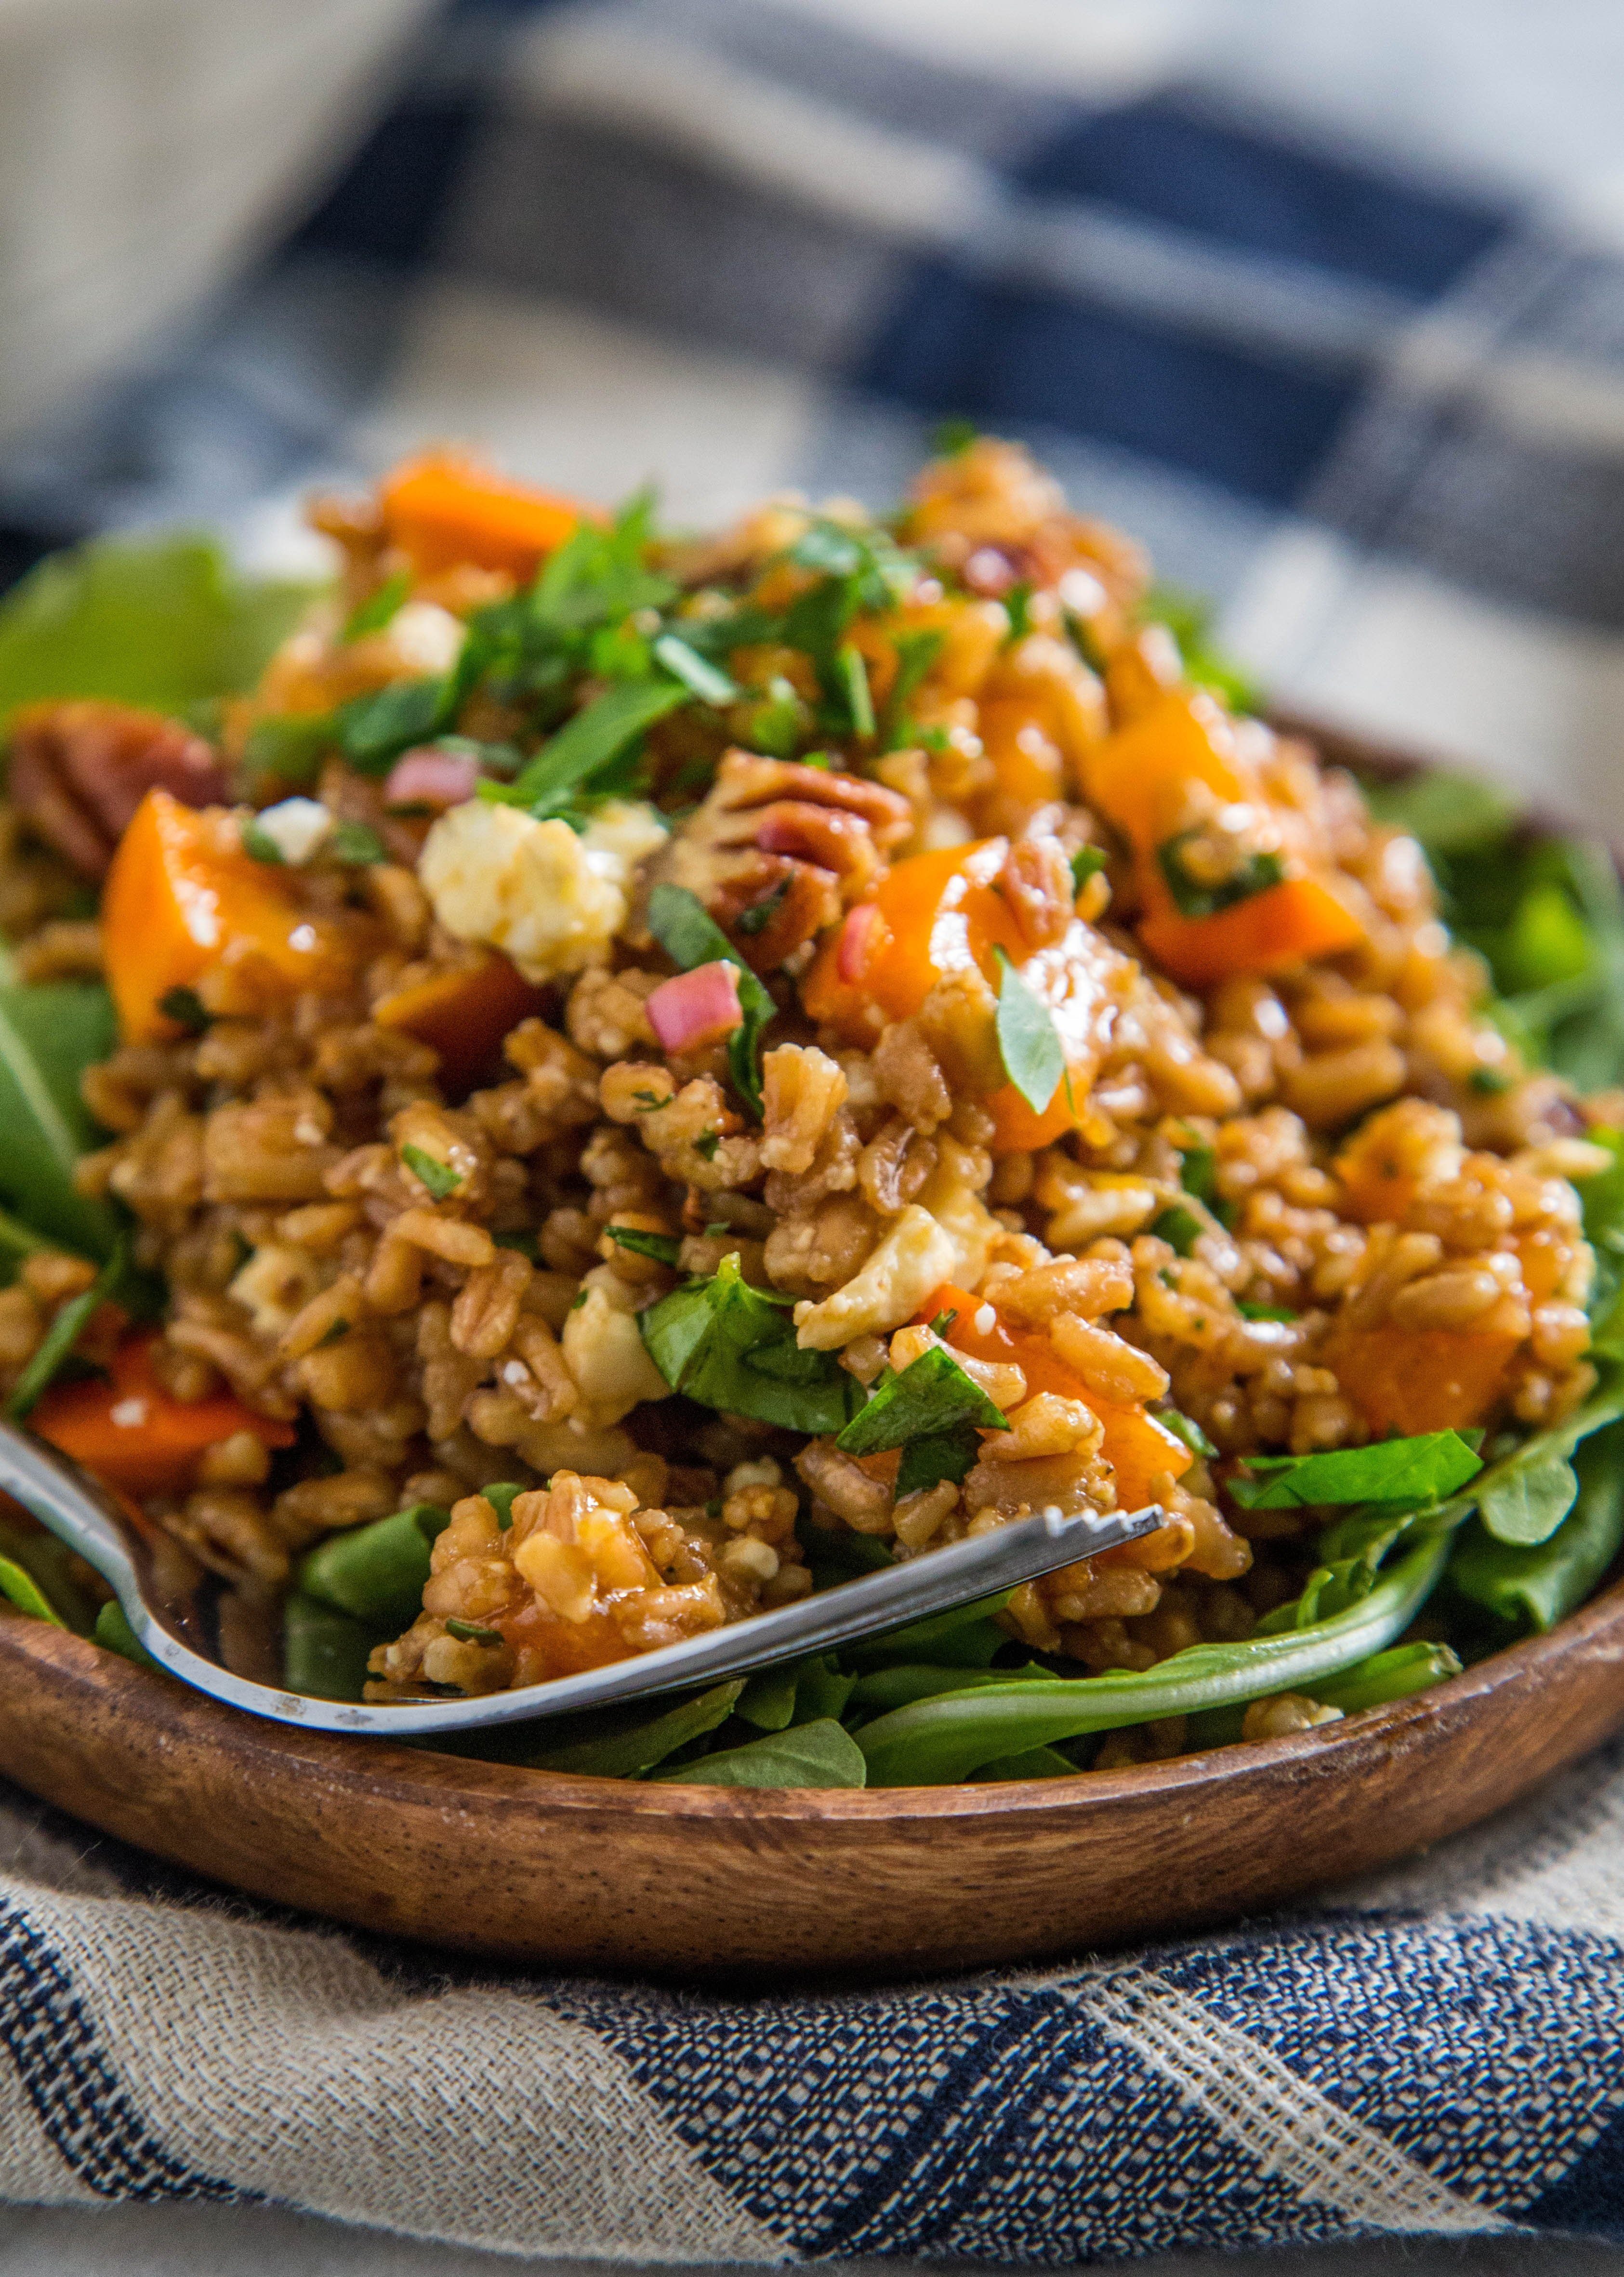 Recipe: Warm Farro Salad with Roasted Squash, Persimmons & Pecans